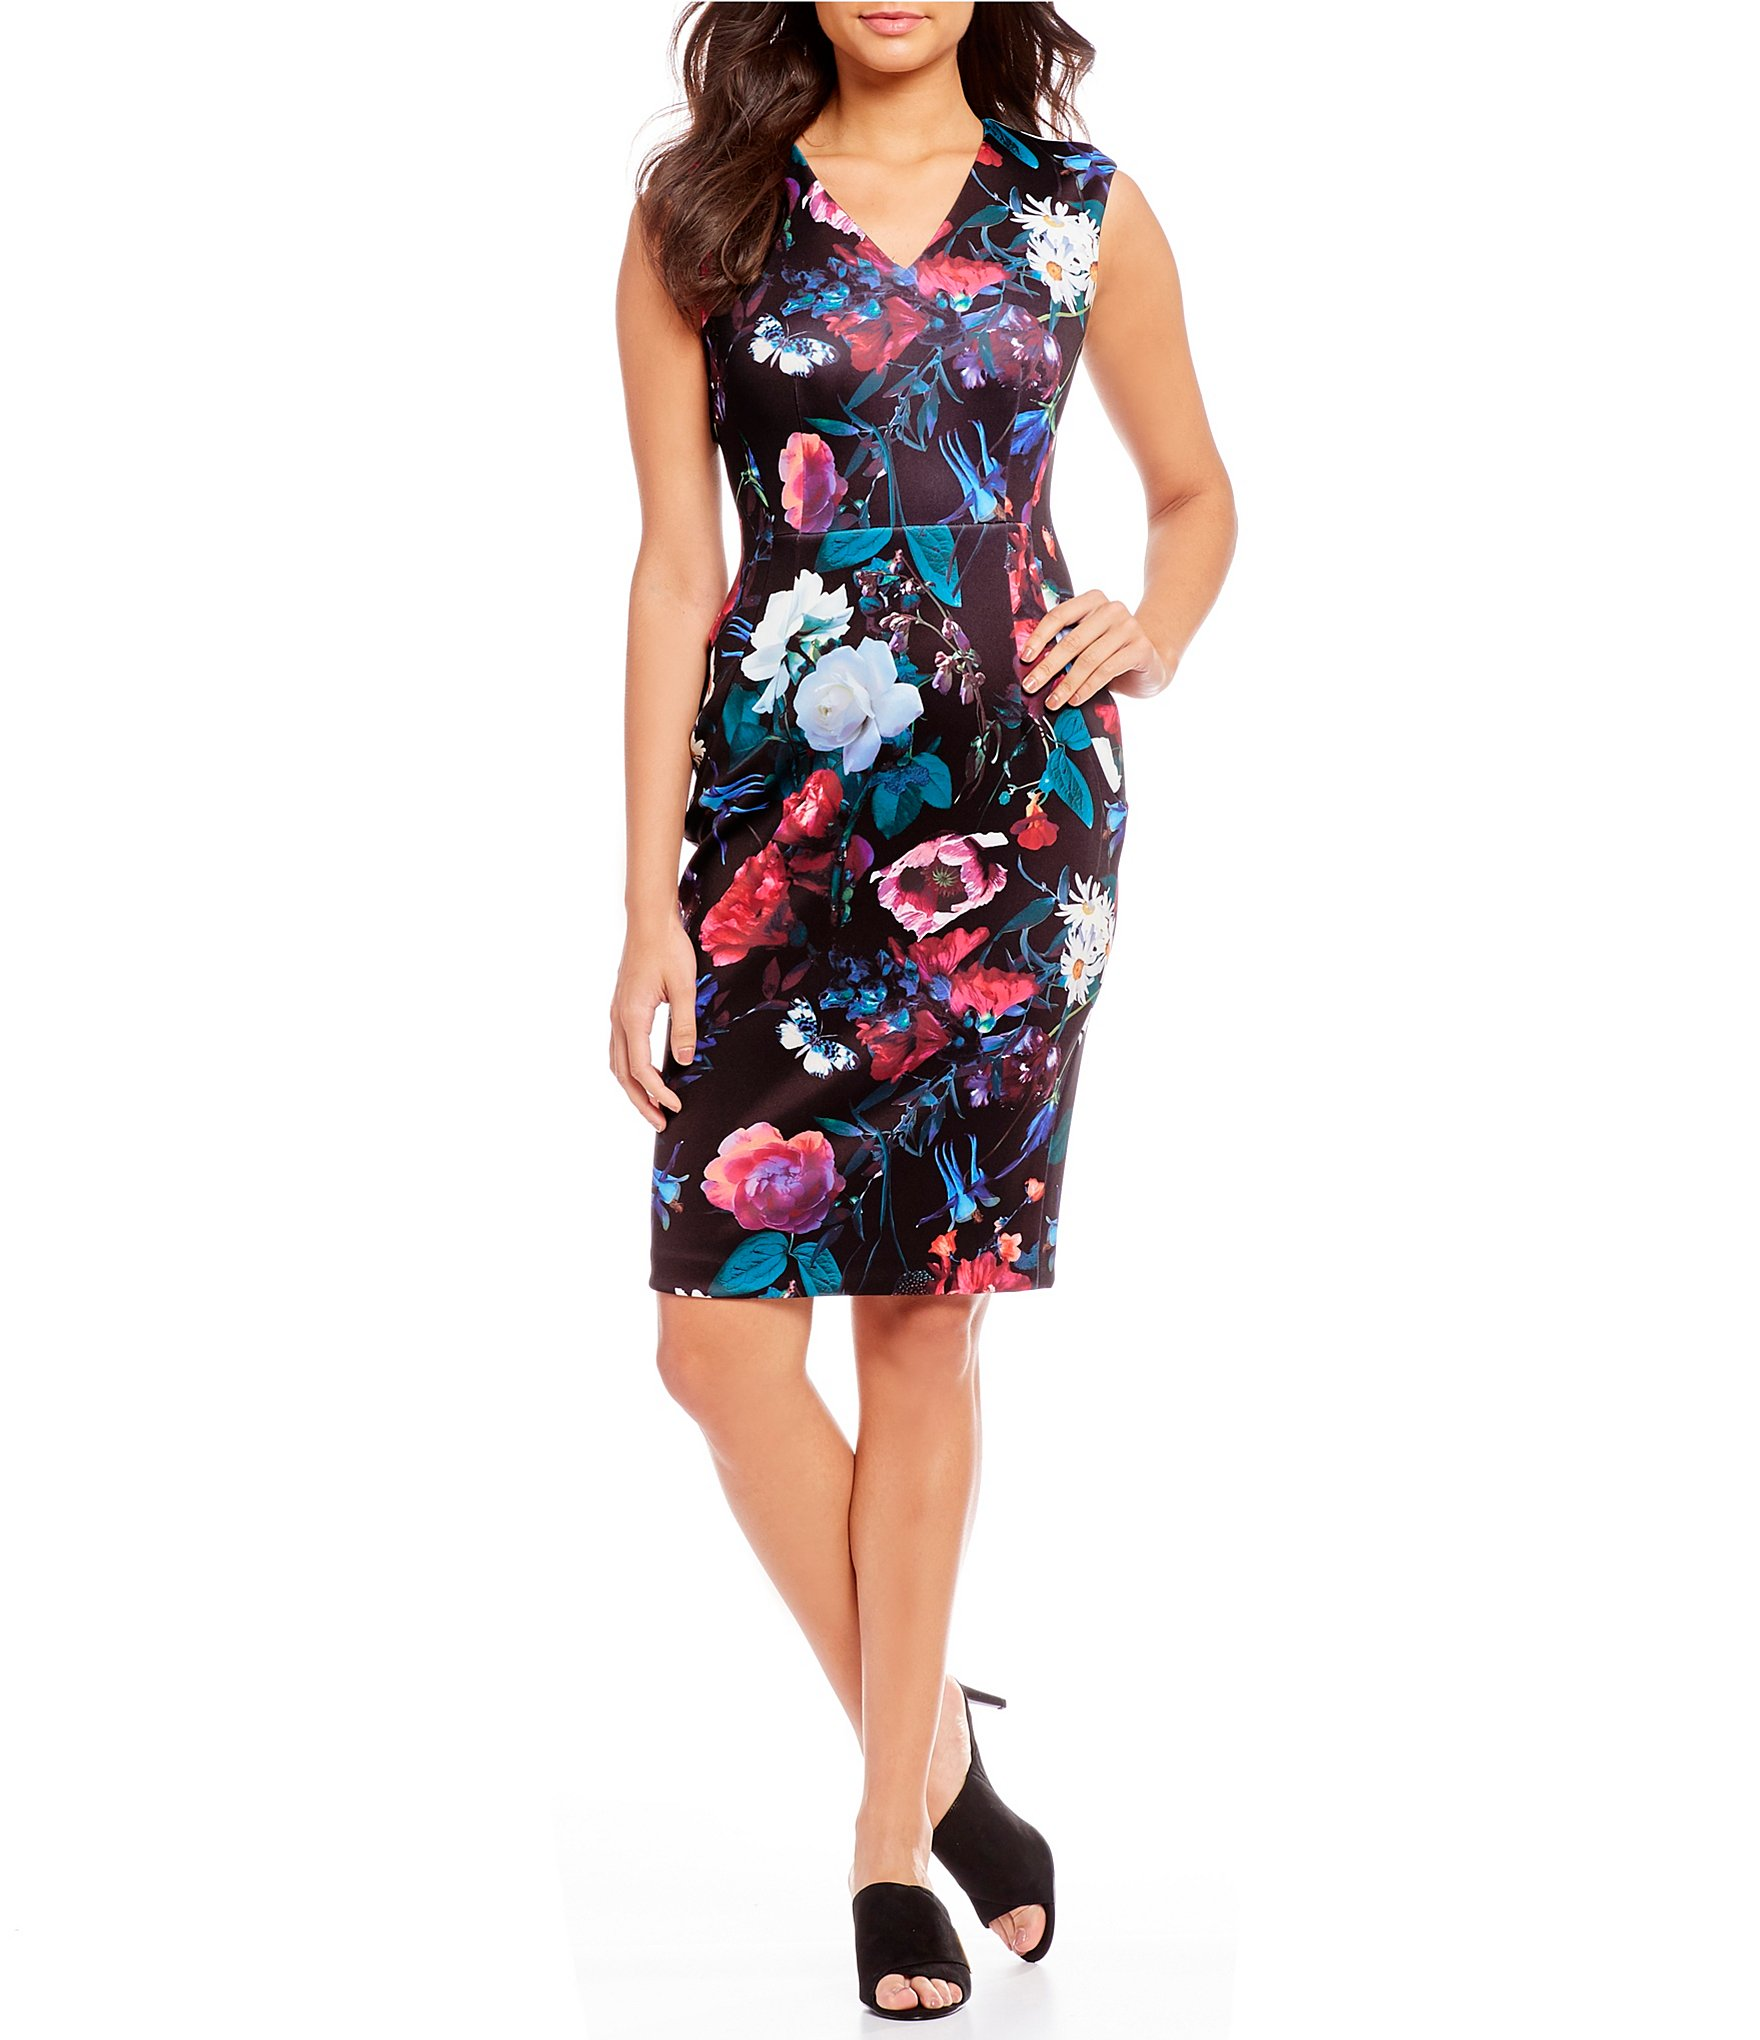 6e90031f8a9b3 Women's Clothing | Dillard's